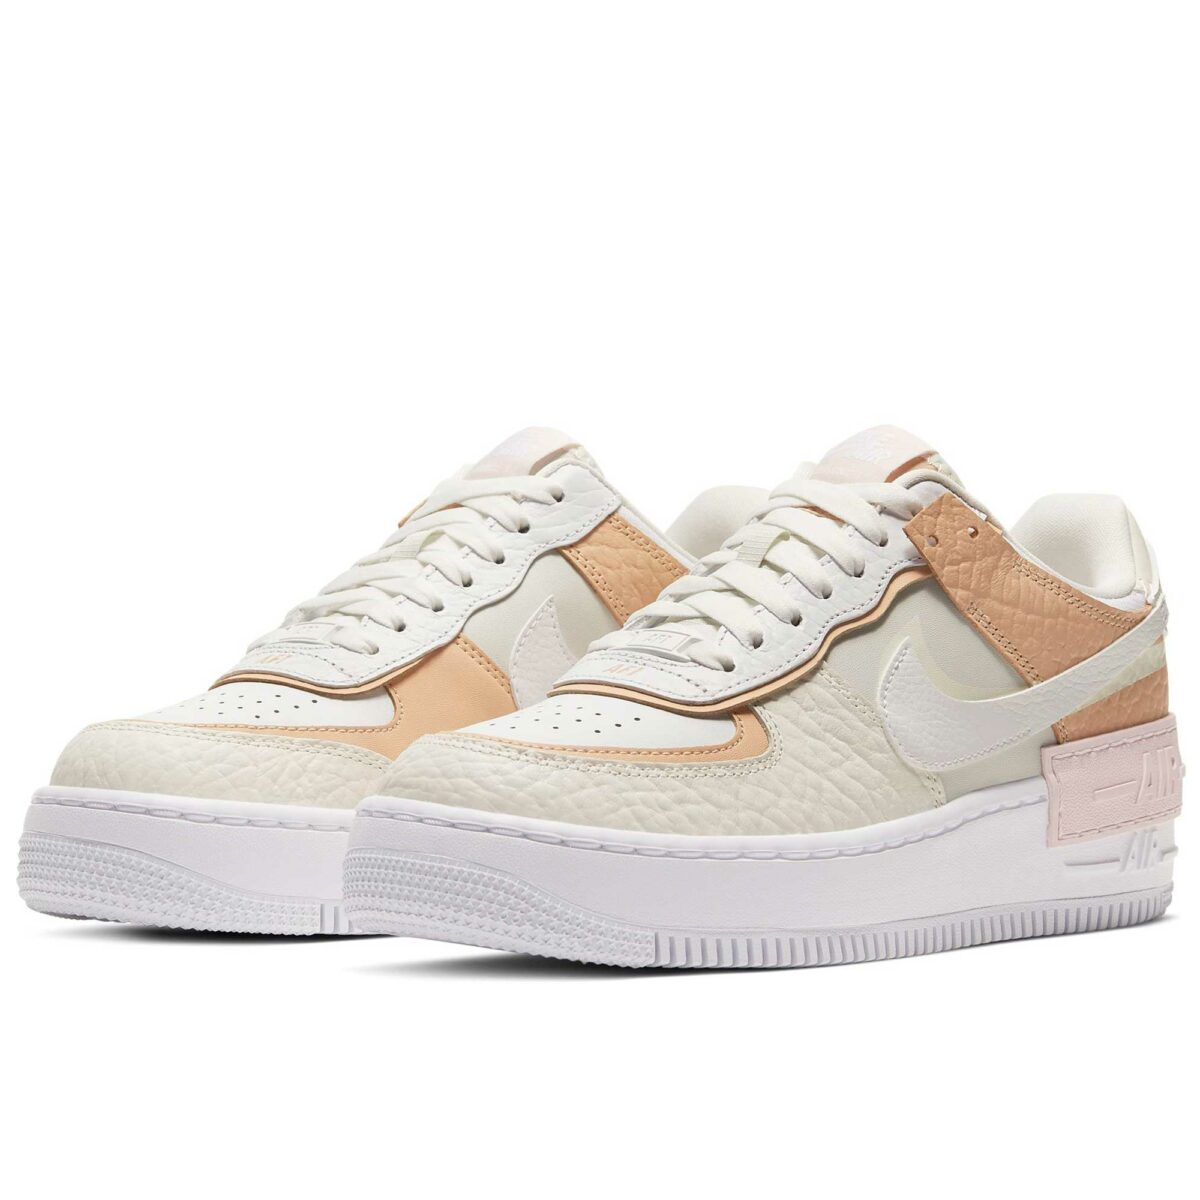 nike air force 1 shadow beige brown marron CK3172_002 купить